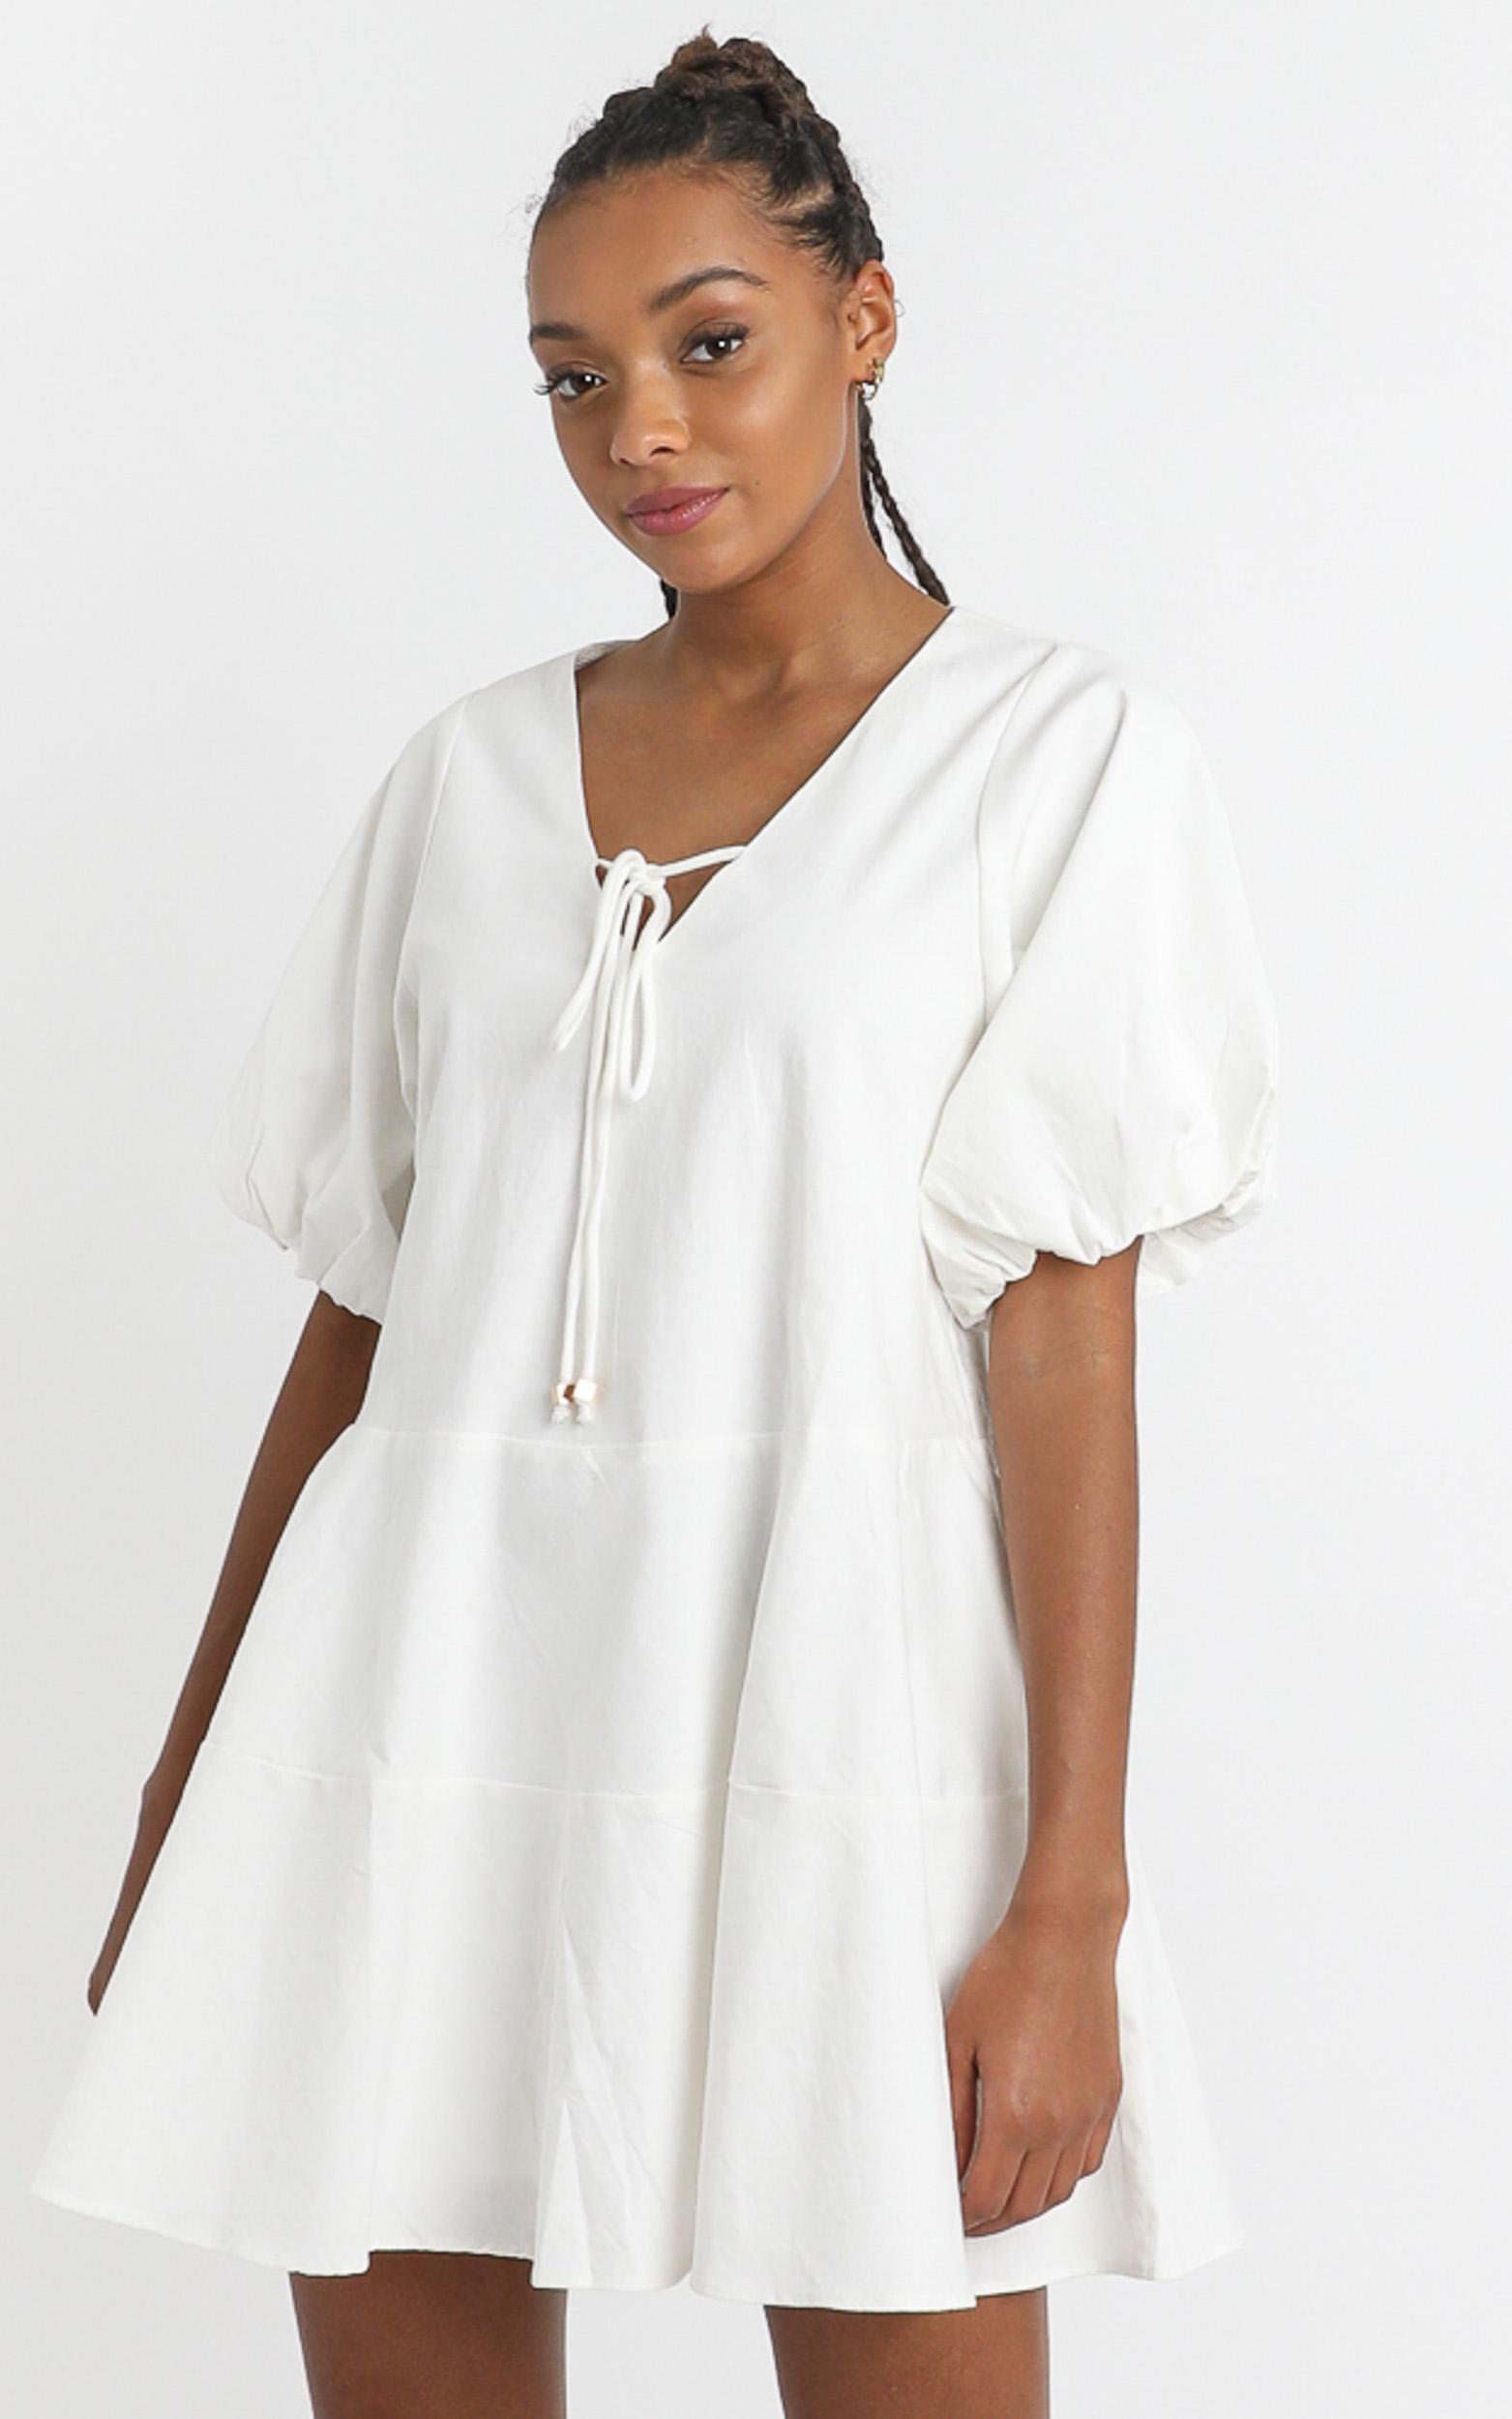 Krizza Mini Dress in white linen look - 6 (XS), White, hi-res image number null